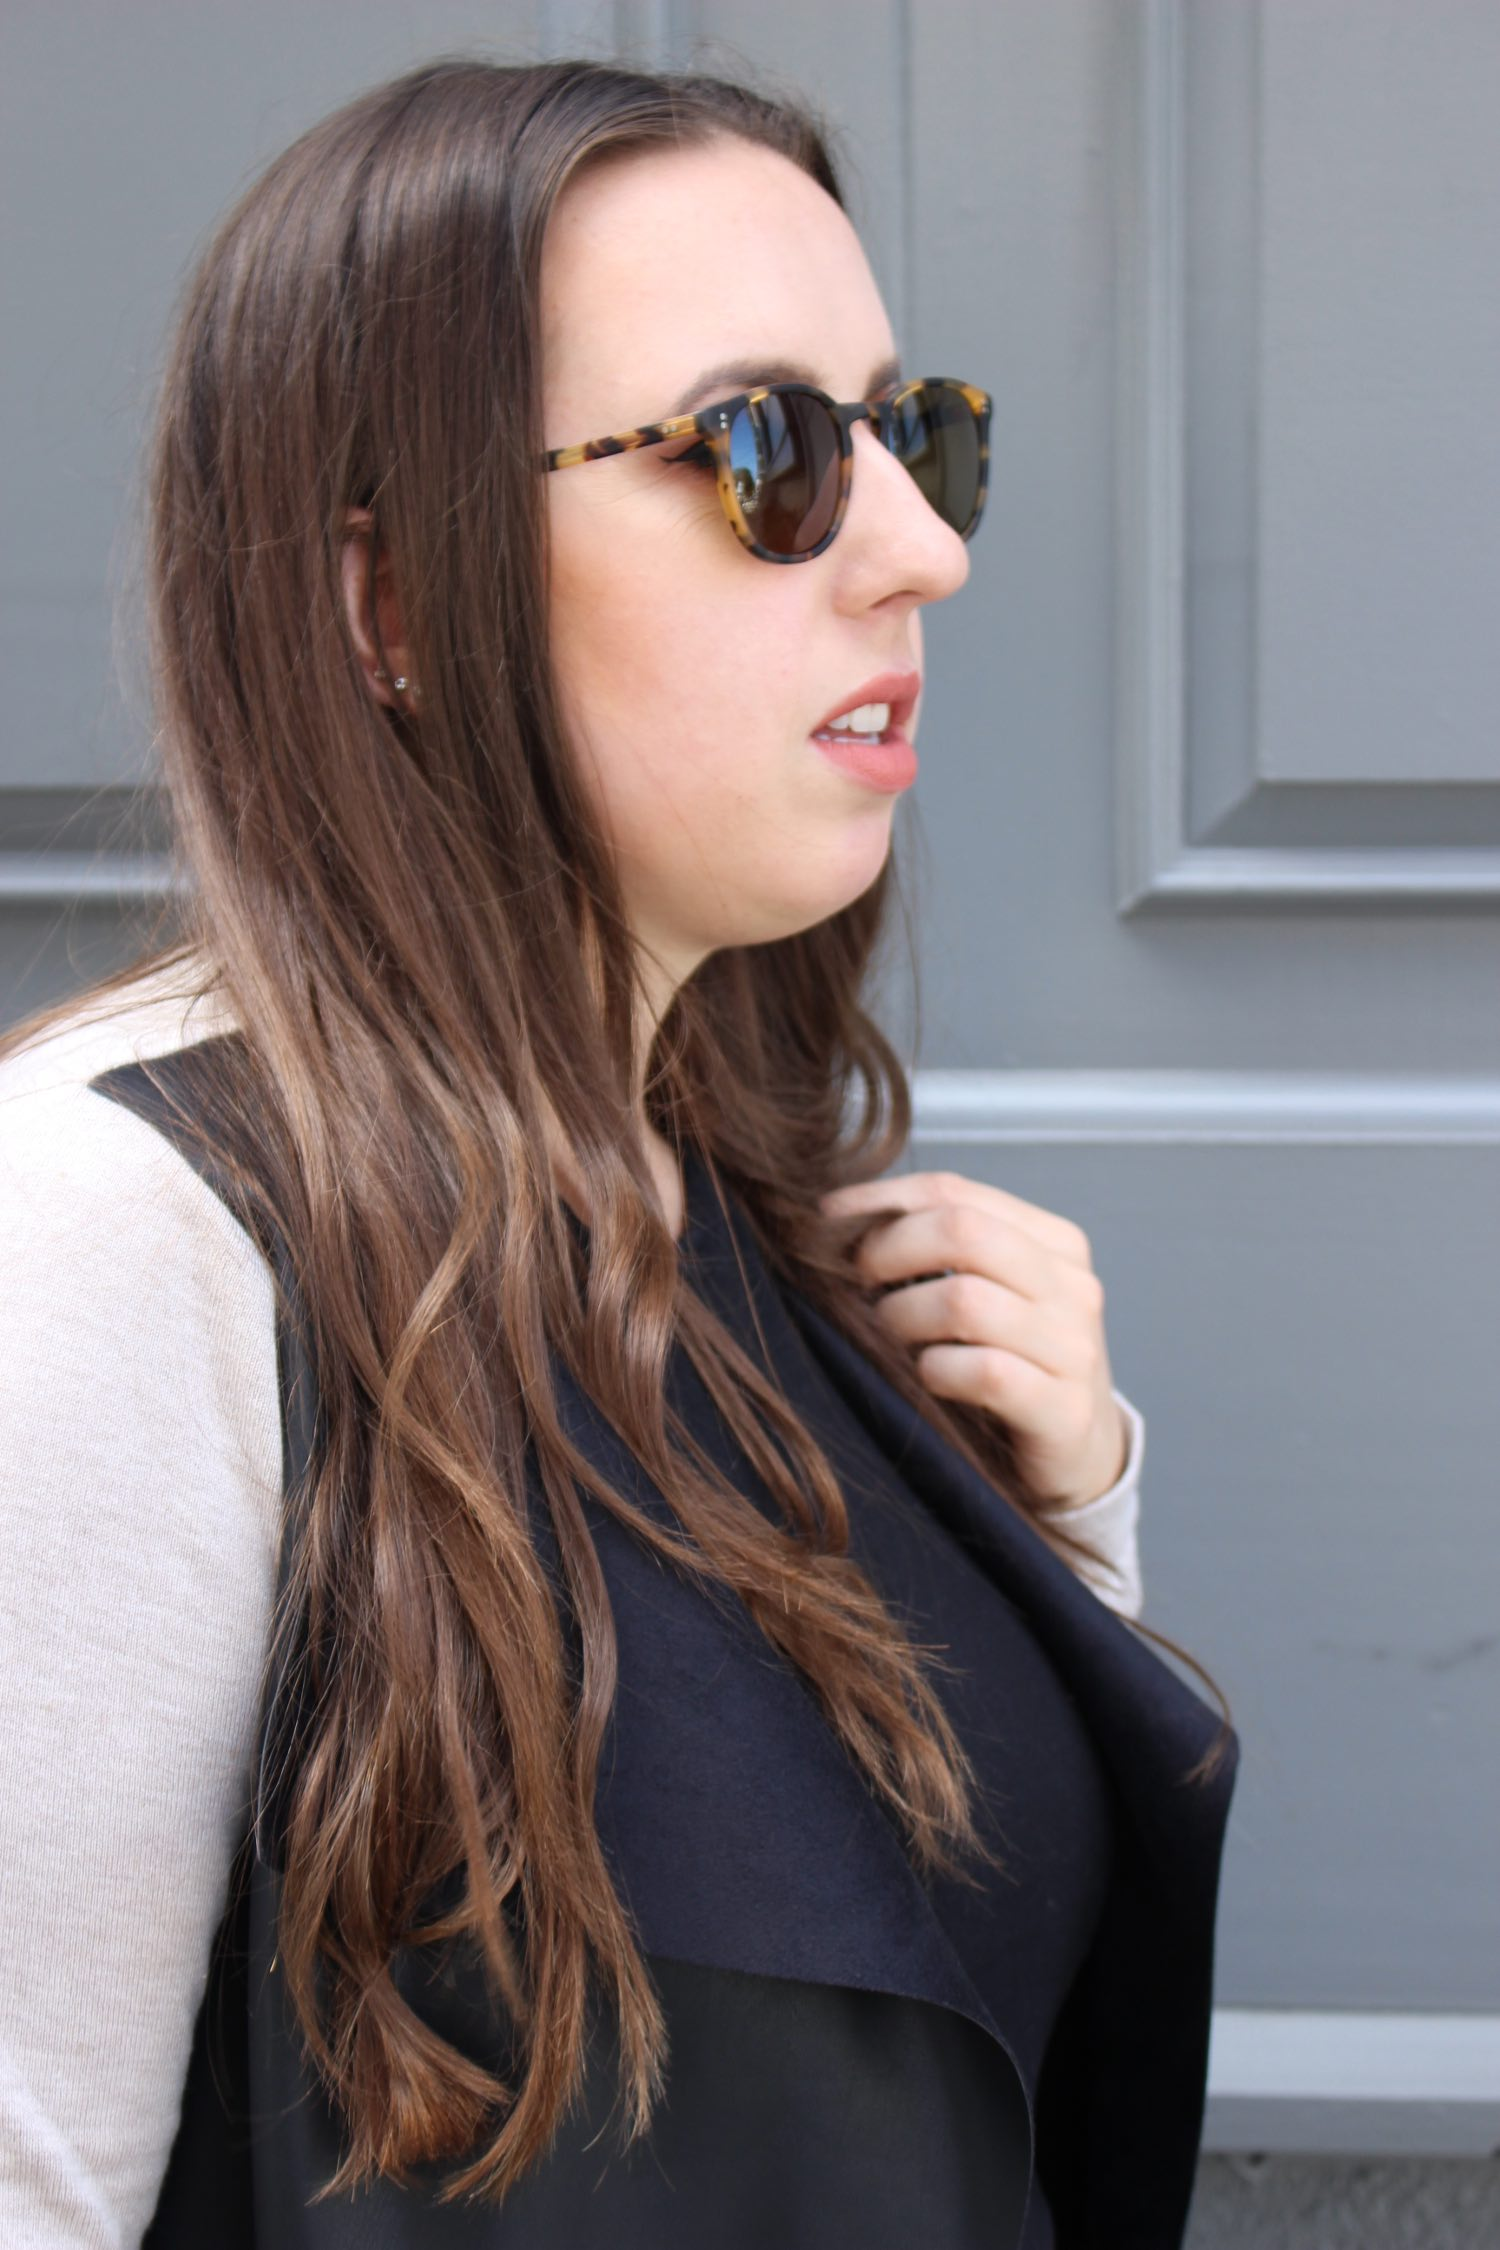 sf blogger wearing garrett leight sunglasses